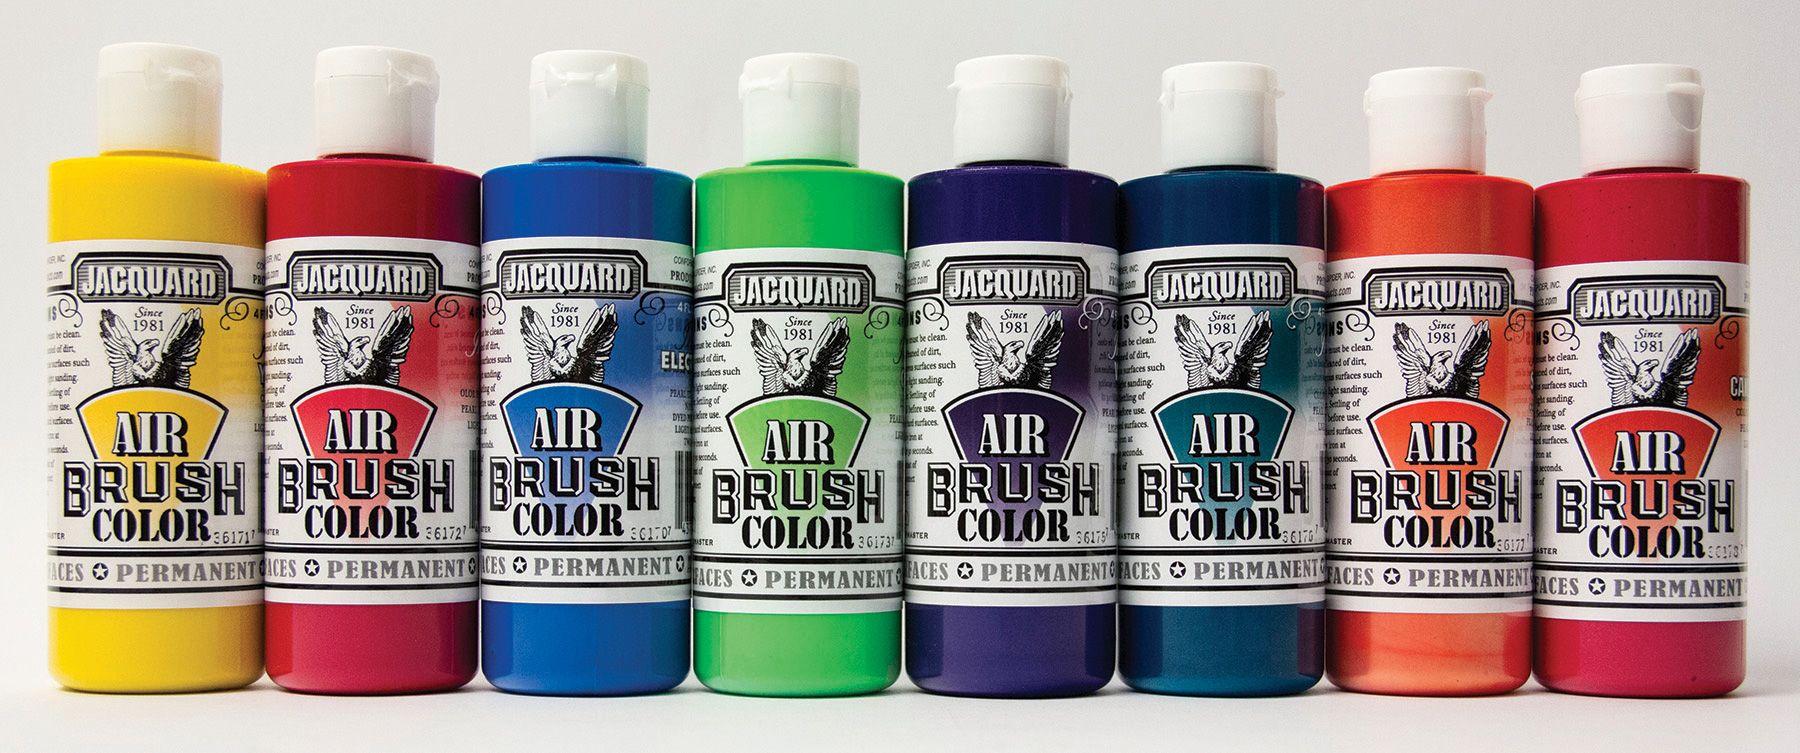 Jacquard Iridescent Airbrush Color